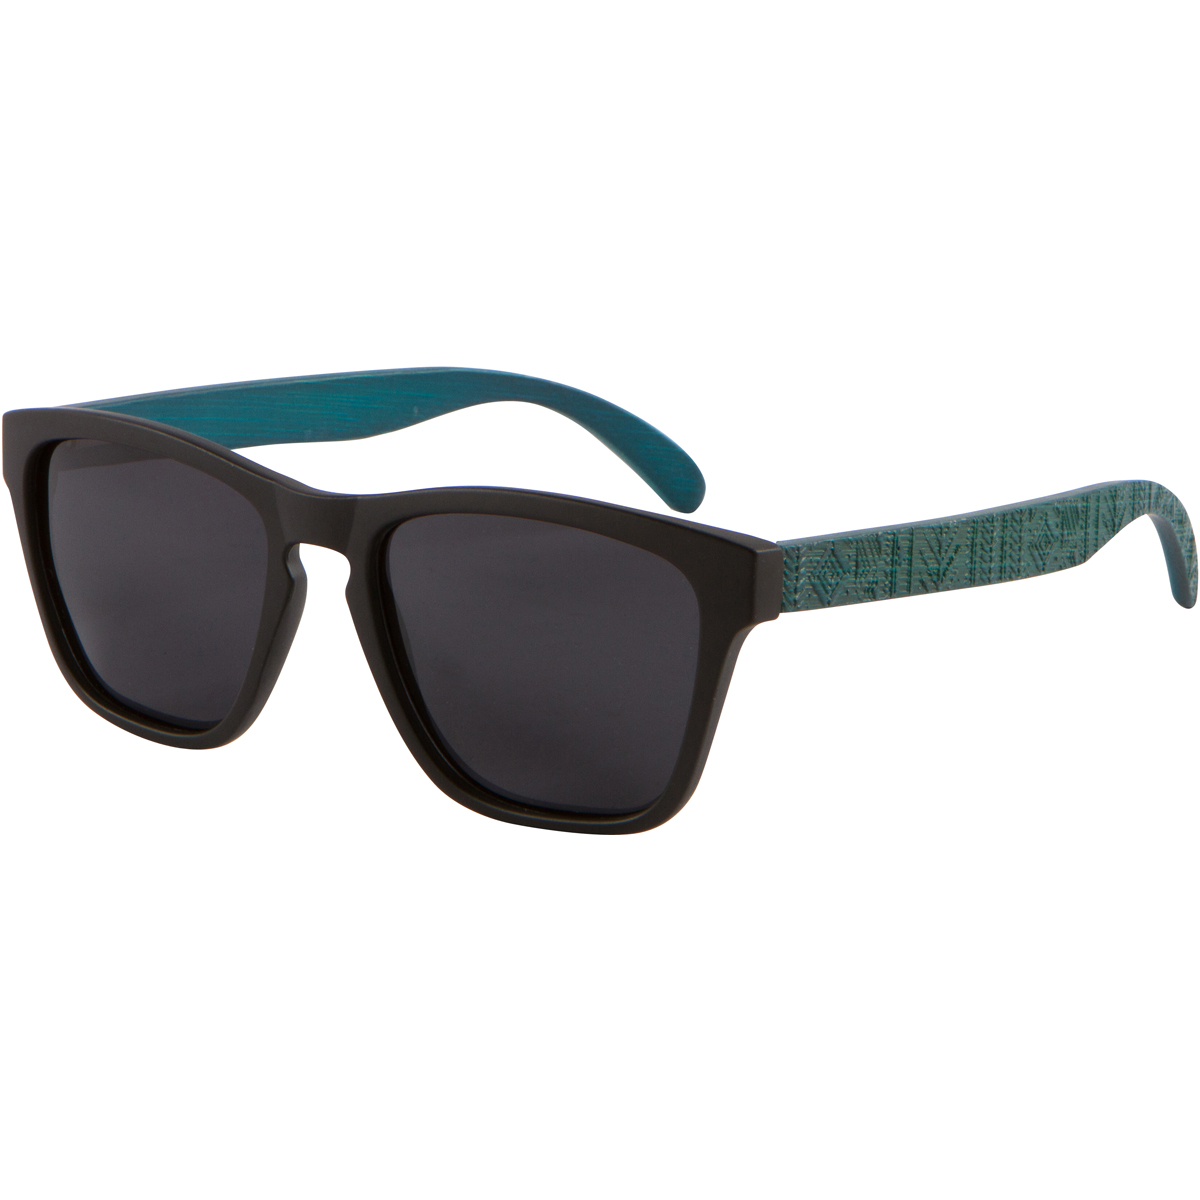 Blue Bamboo Wood Sunglasses